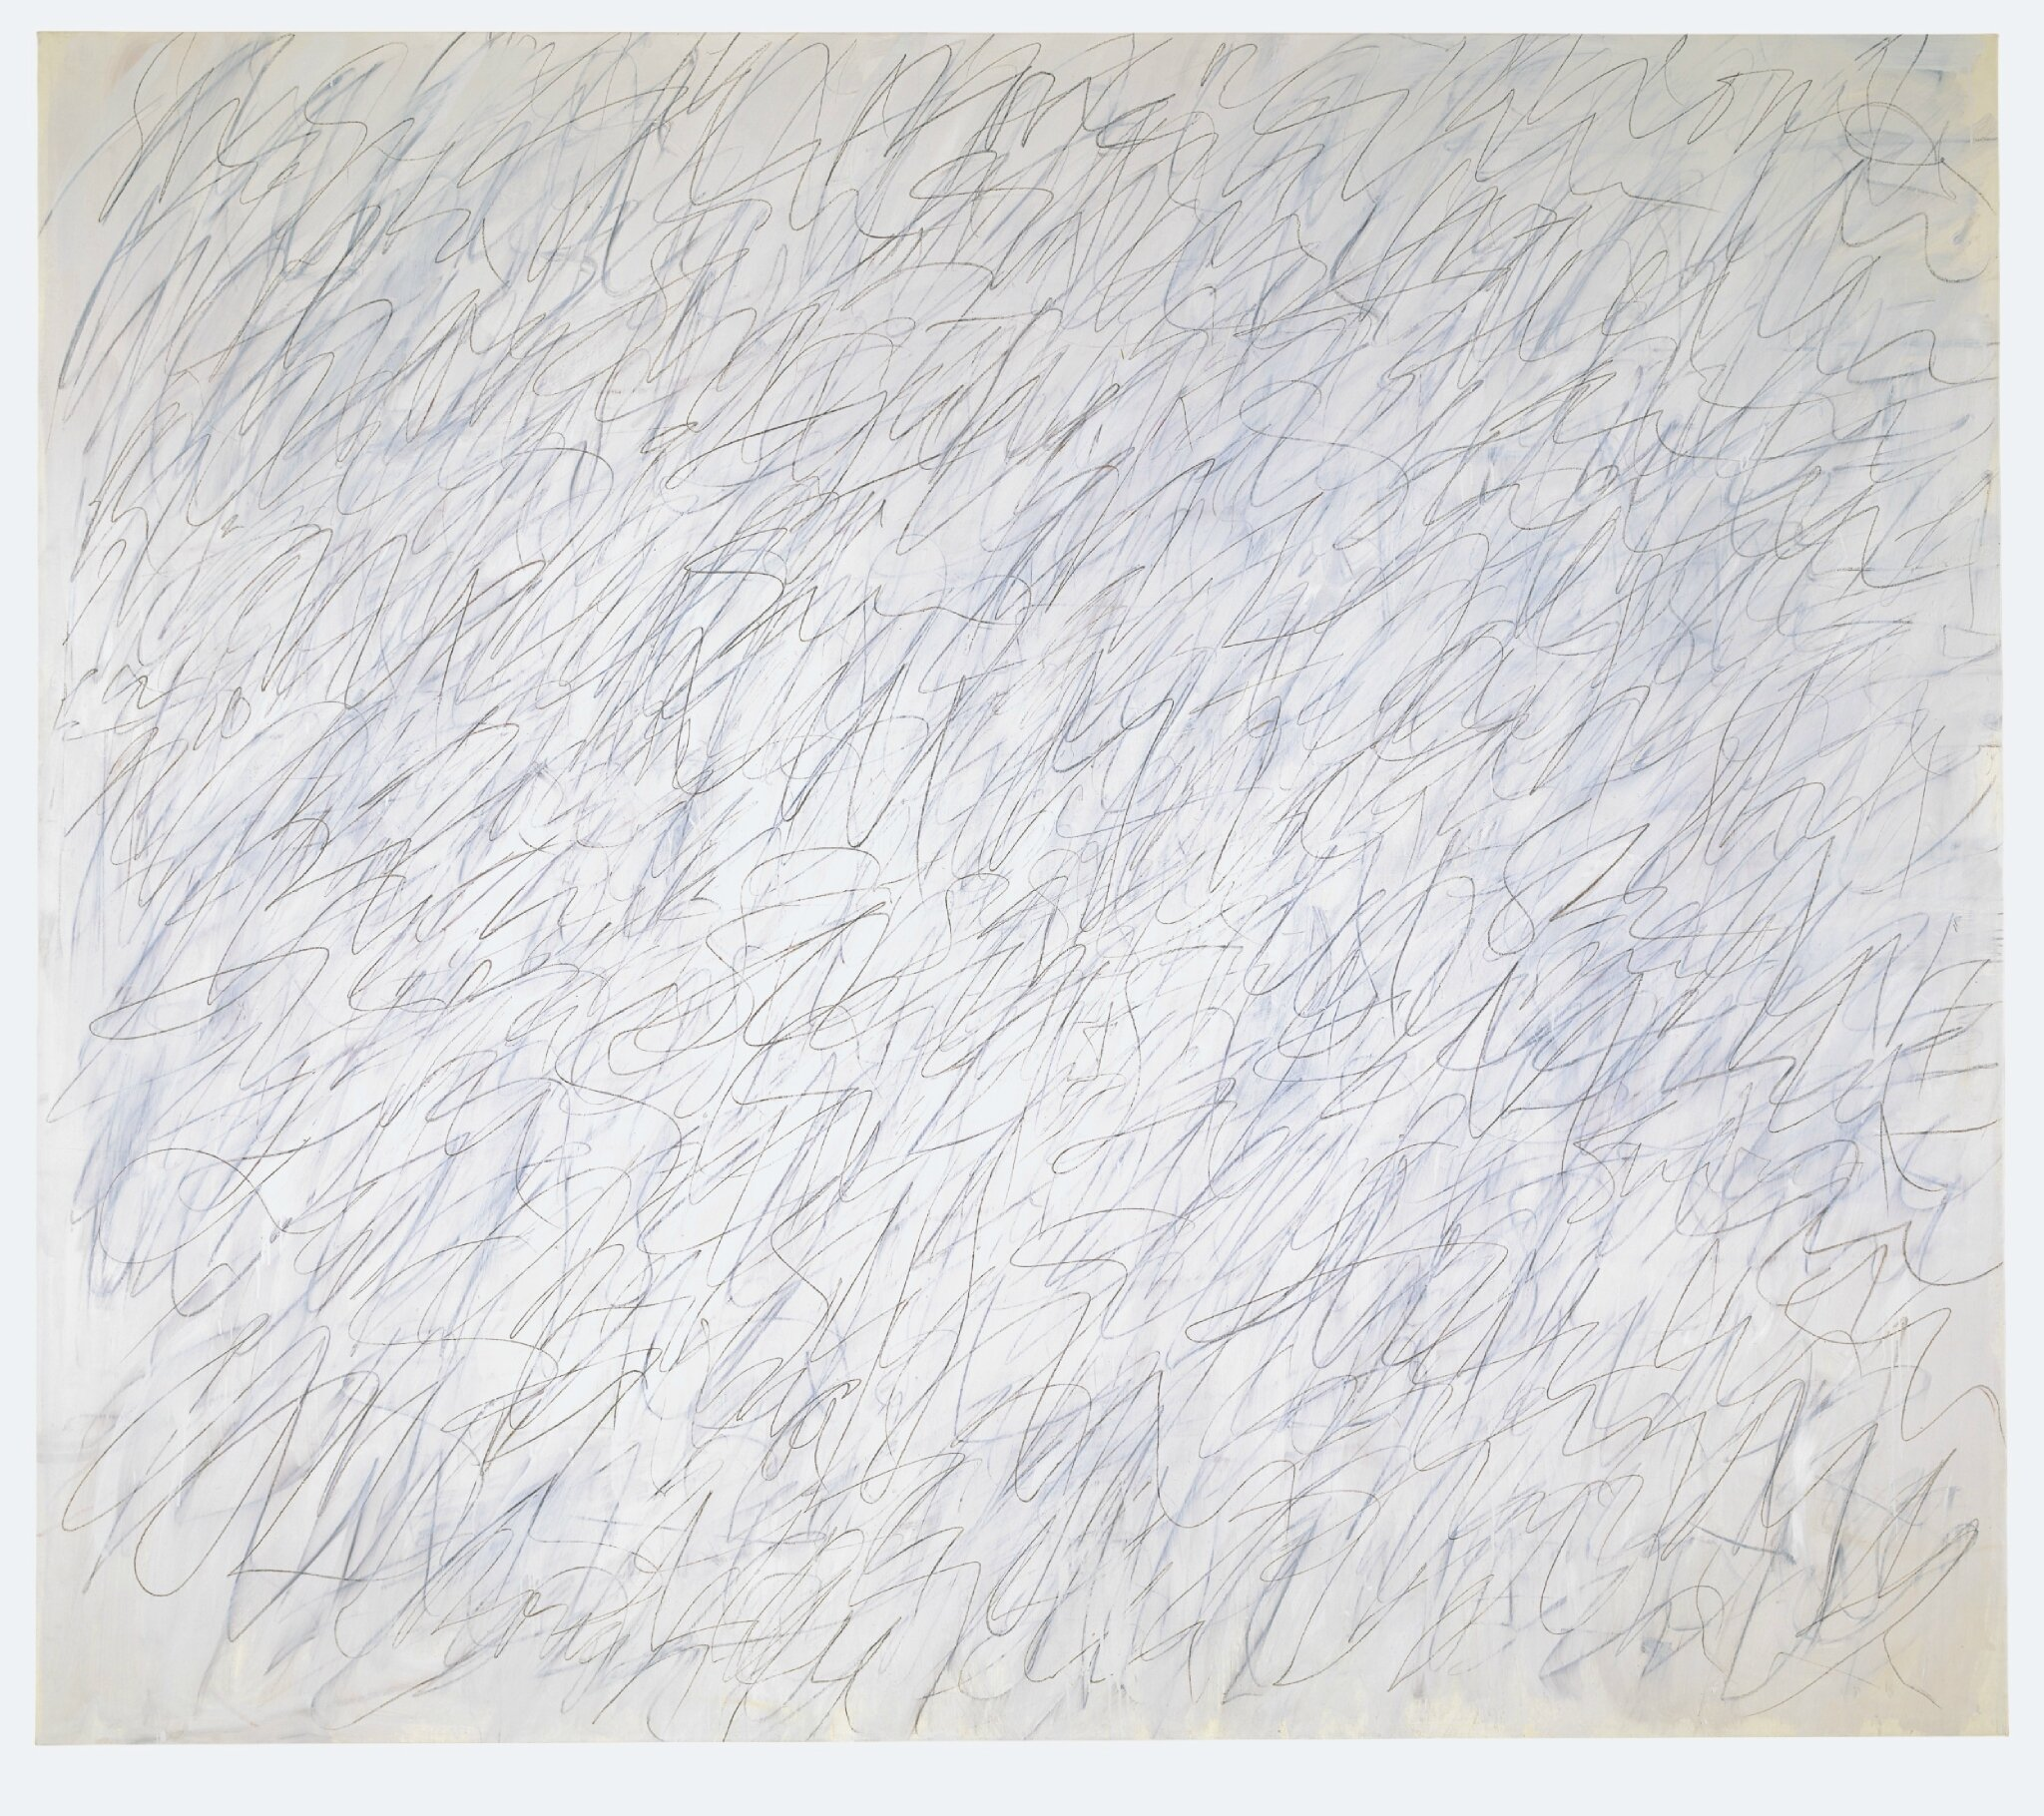 Exhibition of painting & sculpture by Cy Twombly on view at Kunstmuseum Basel